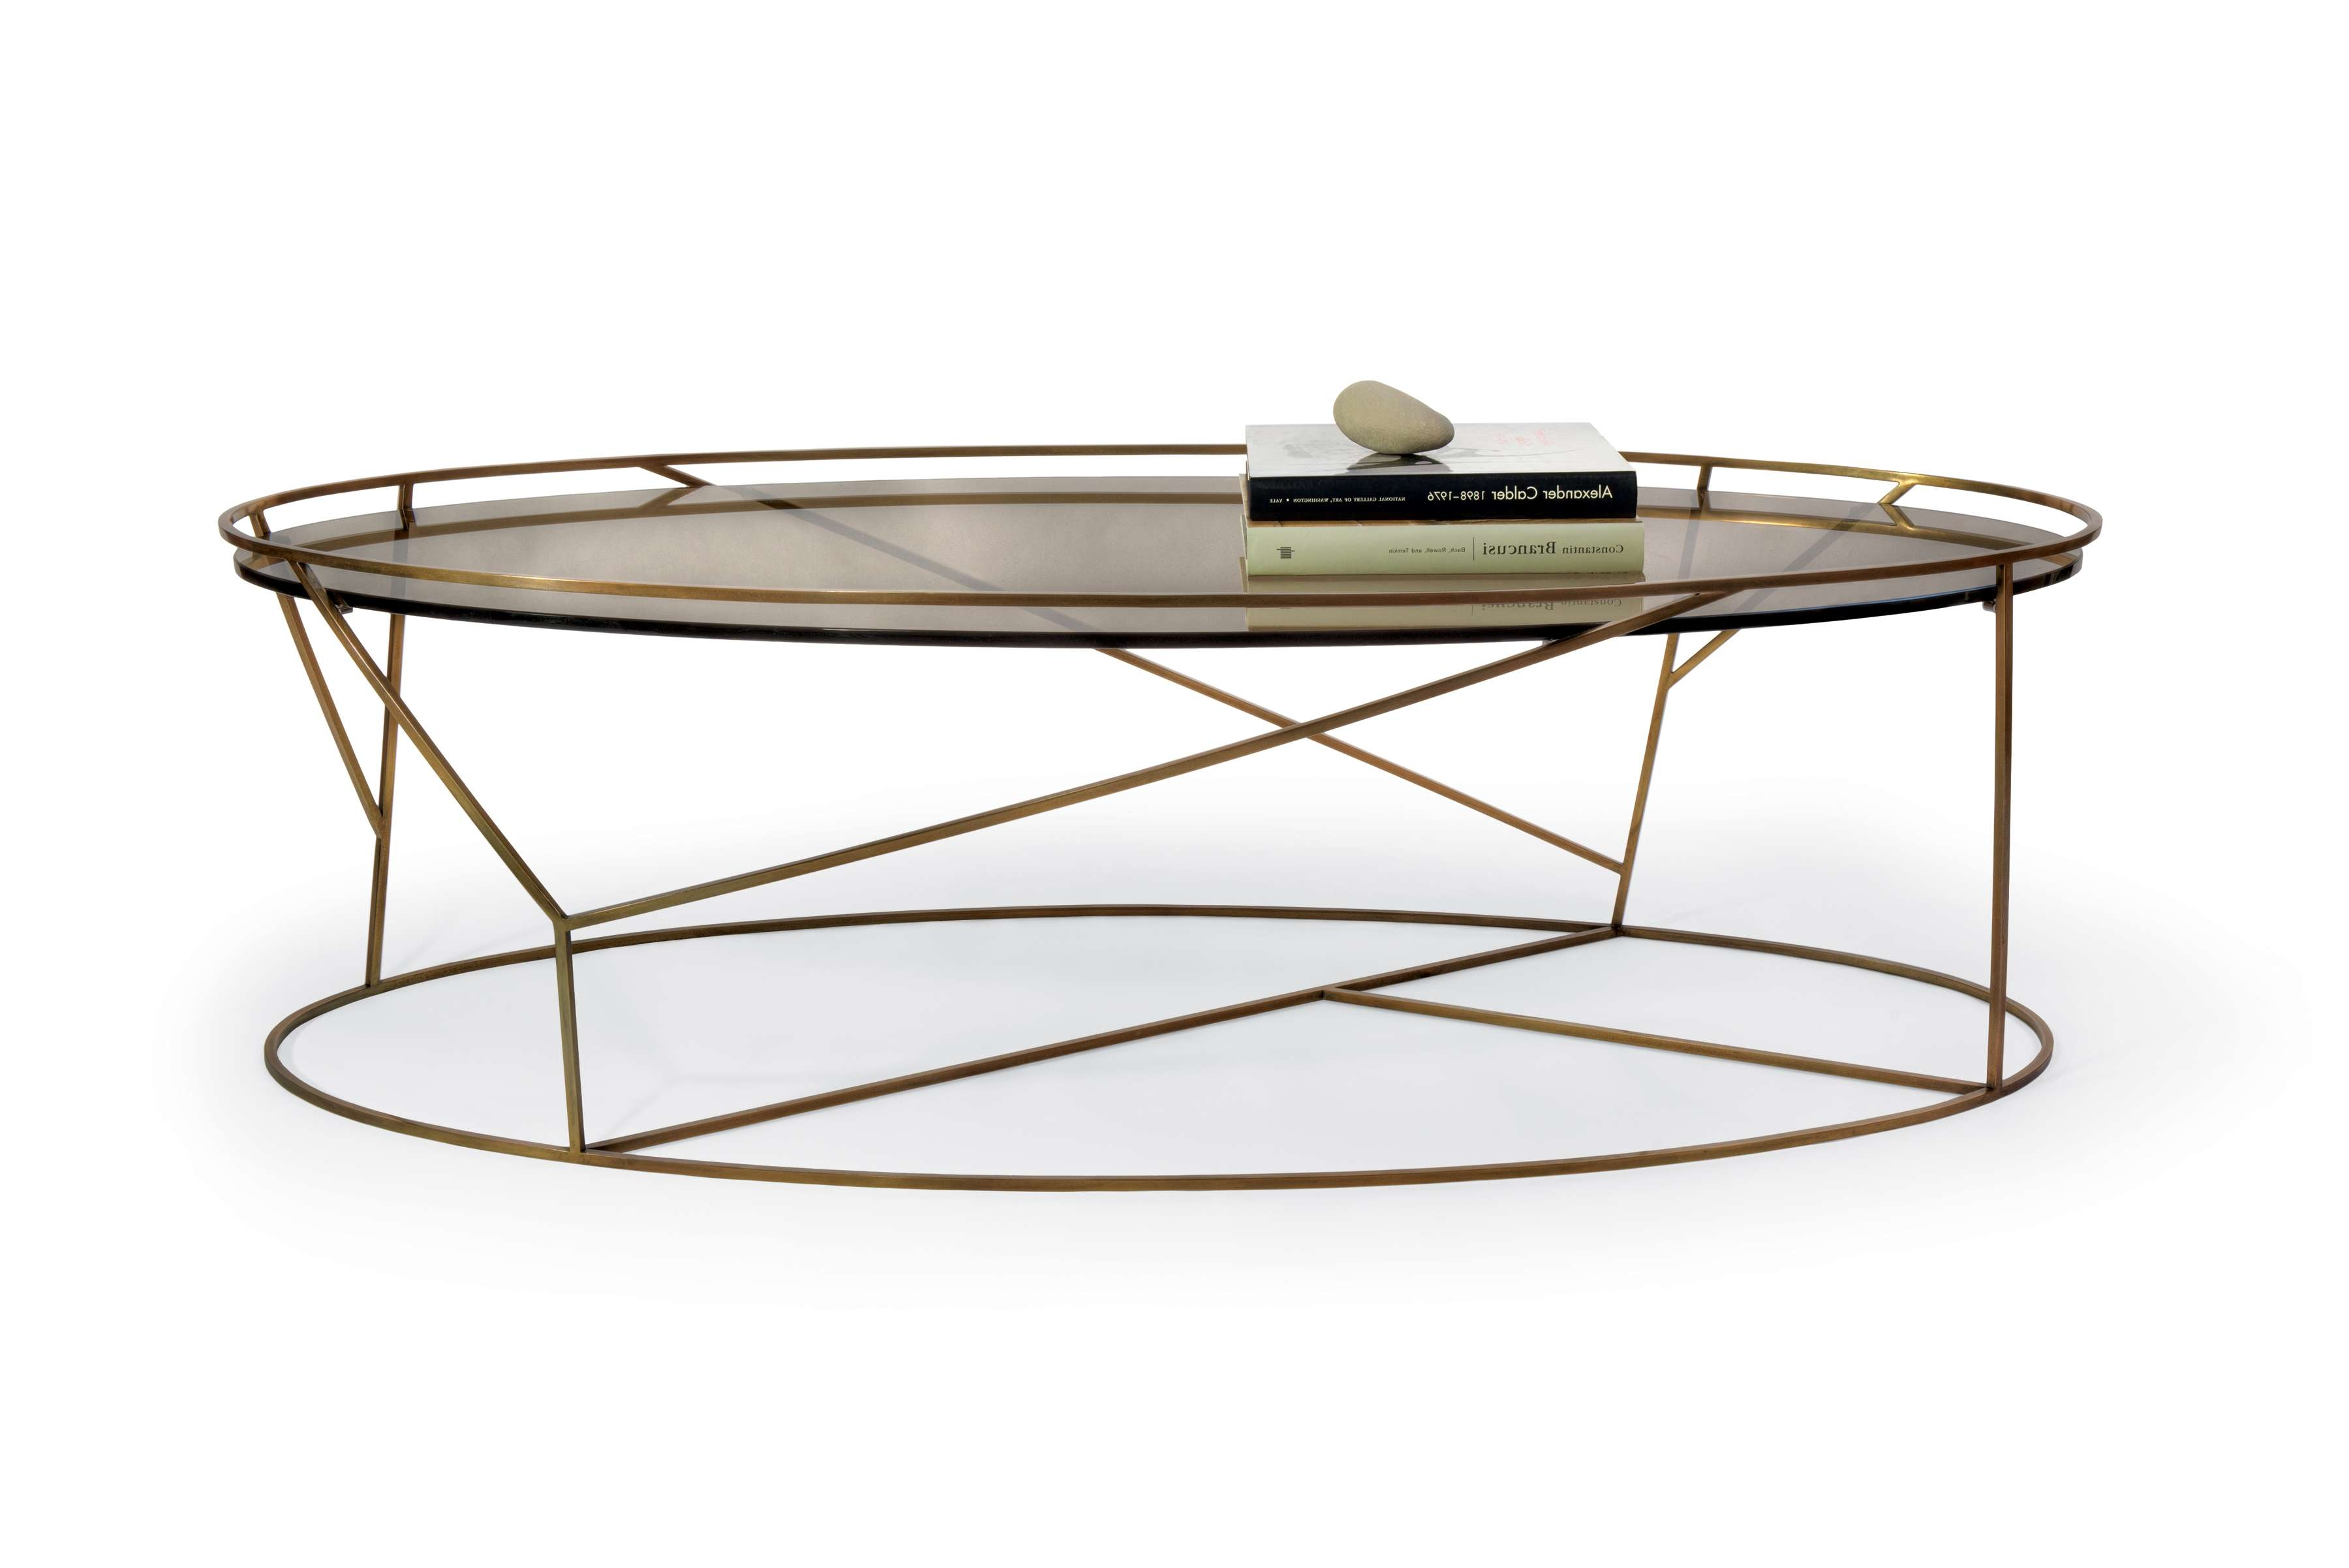 Well Known Oval Glass Coffee Tables Throughout Brass Frame Coffee Table With Oval Glass Top For Small Rustic (View 18 of 20)